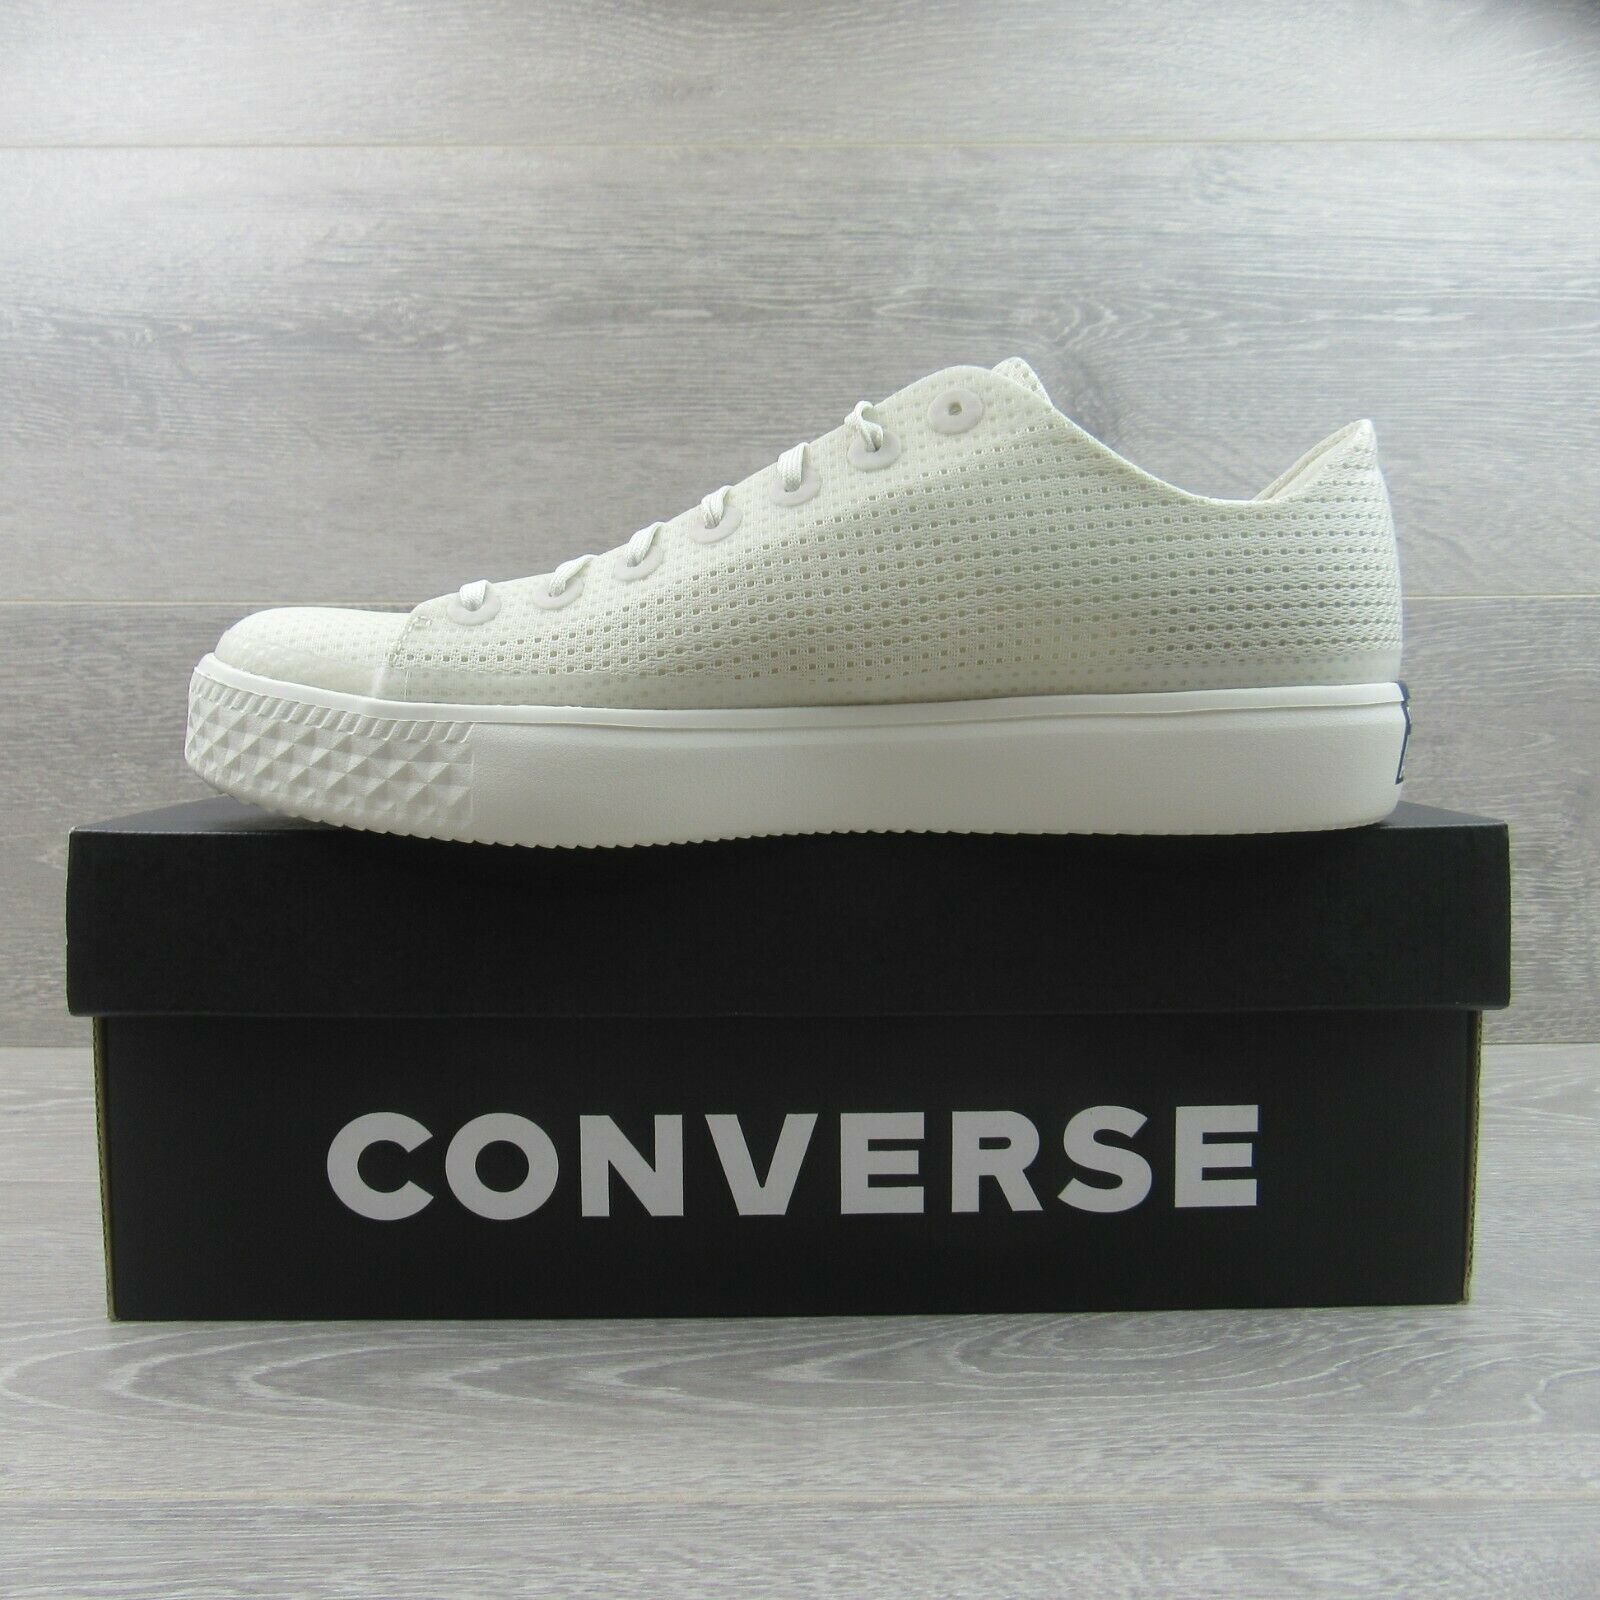 Converse CTAS Modern OX Buff White Shoes Size 9.5 Mens NEW 156652C image 3